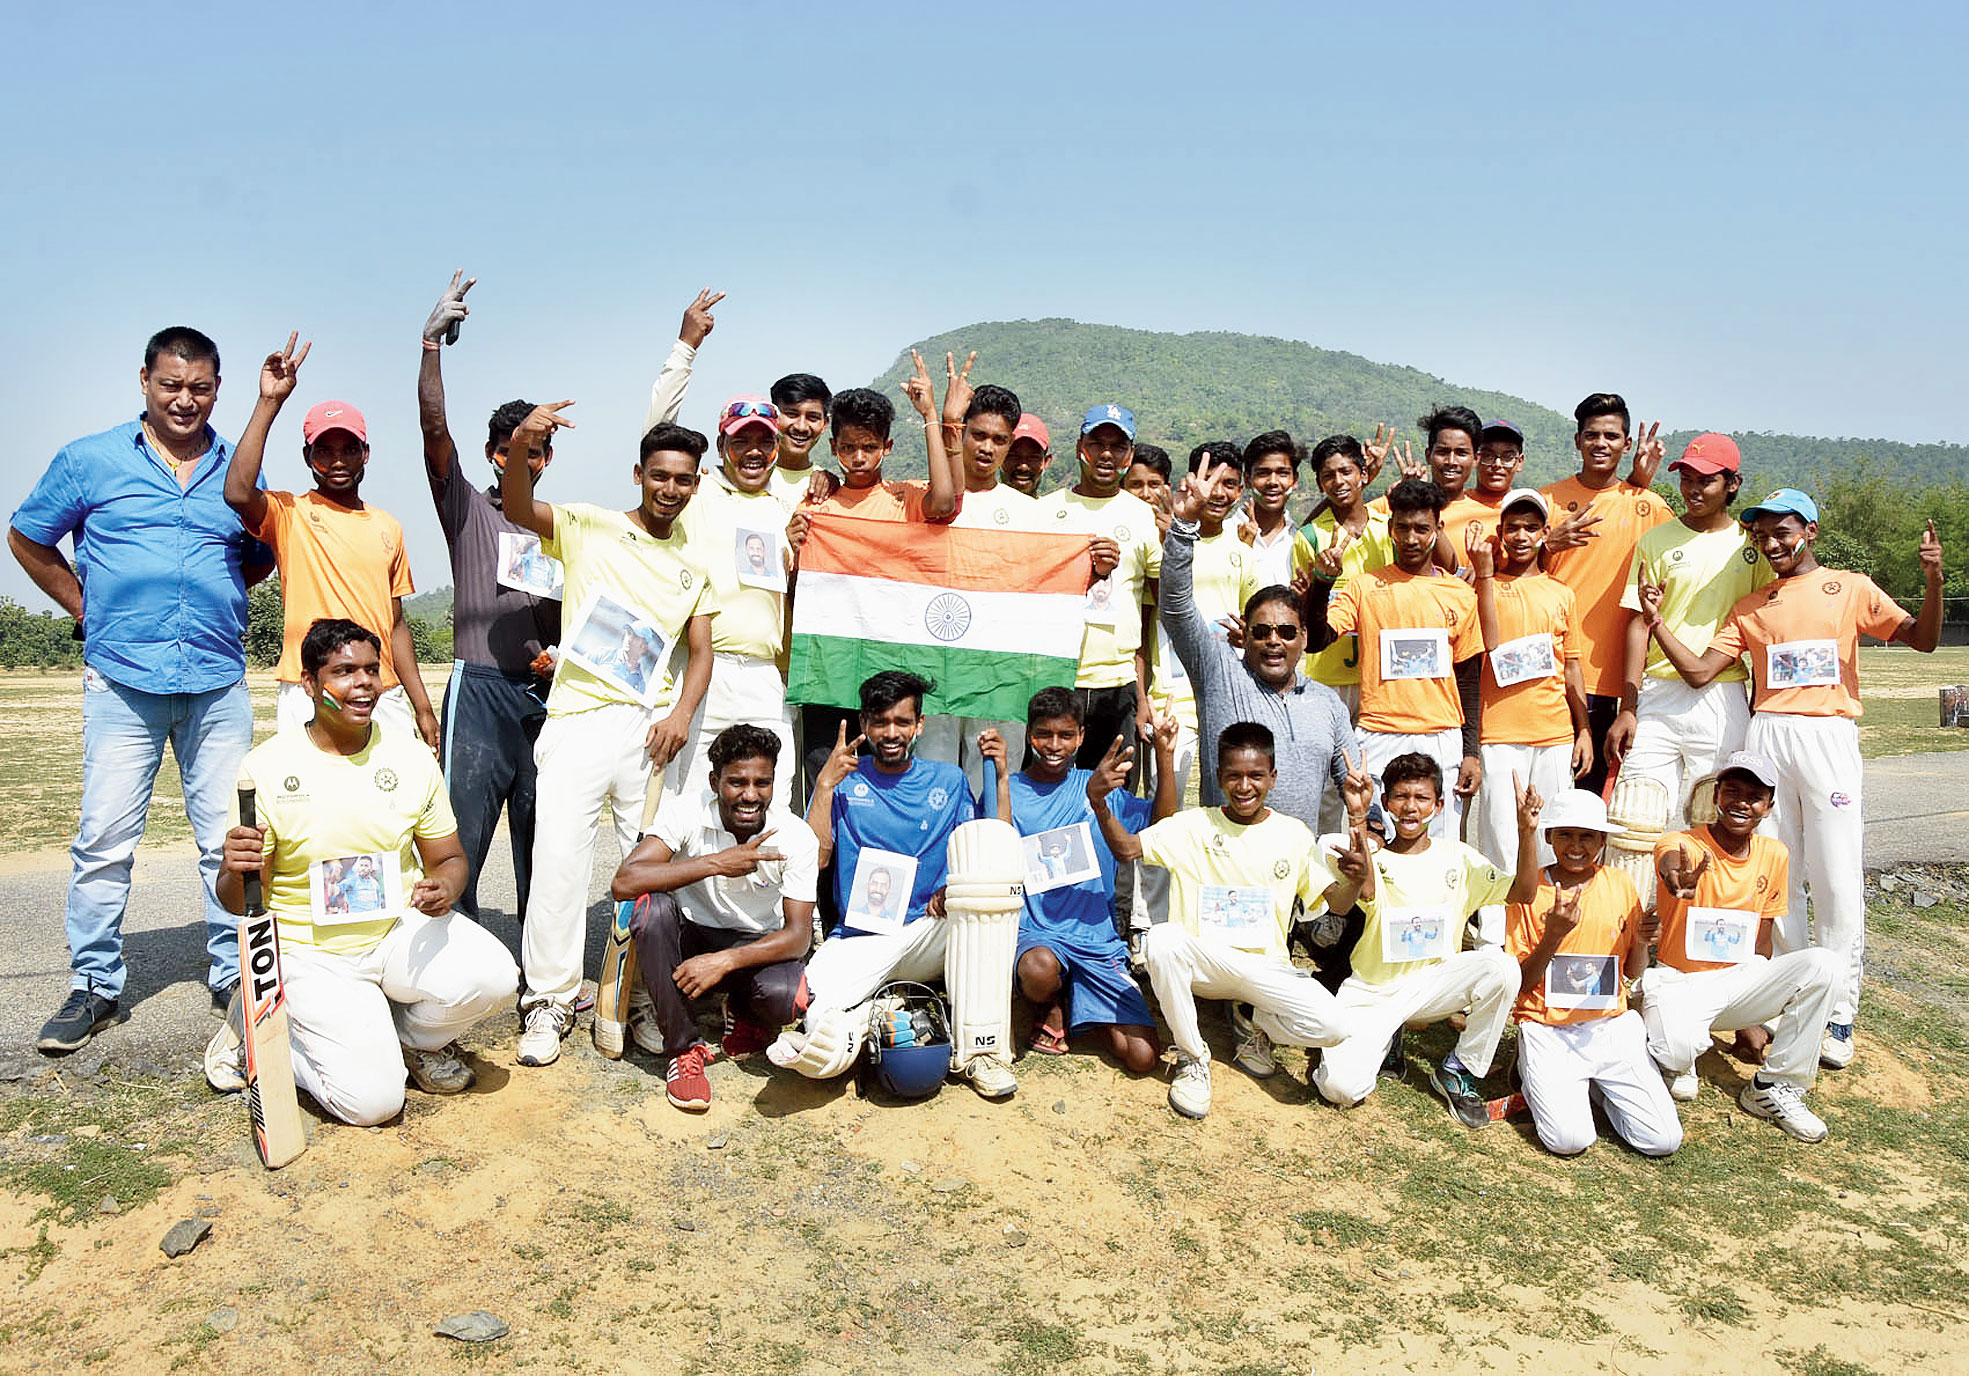 Cricketers of rebel-hit Tundi in Dhanbad cheer for Team India at the World Cup on Wednesday with their coach Umesh Srivastava (seated, with glares).